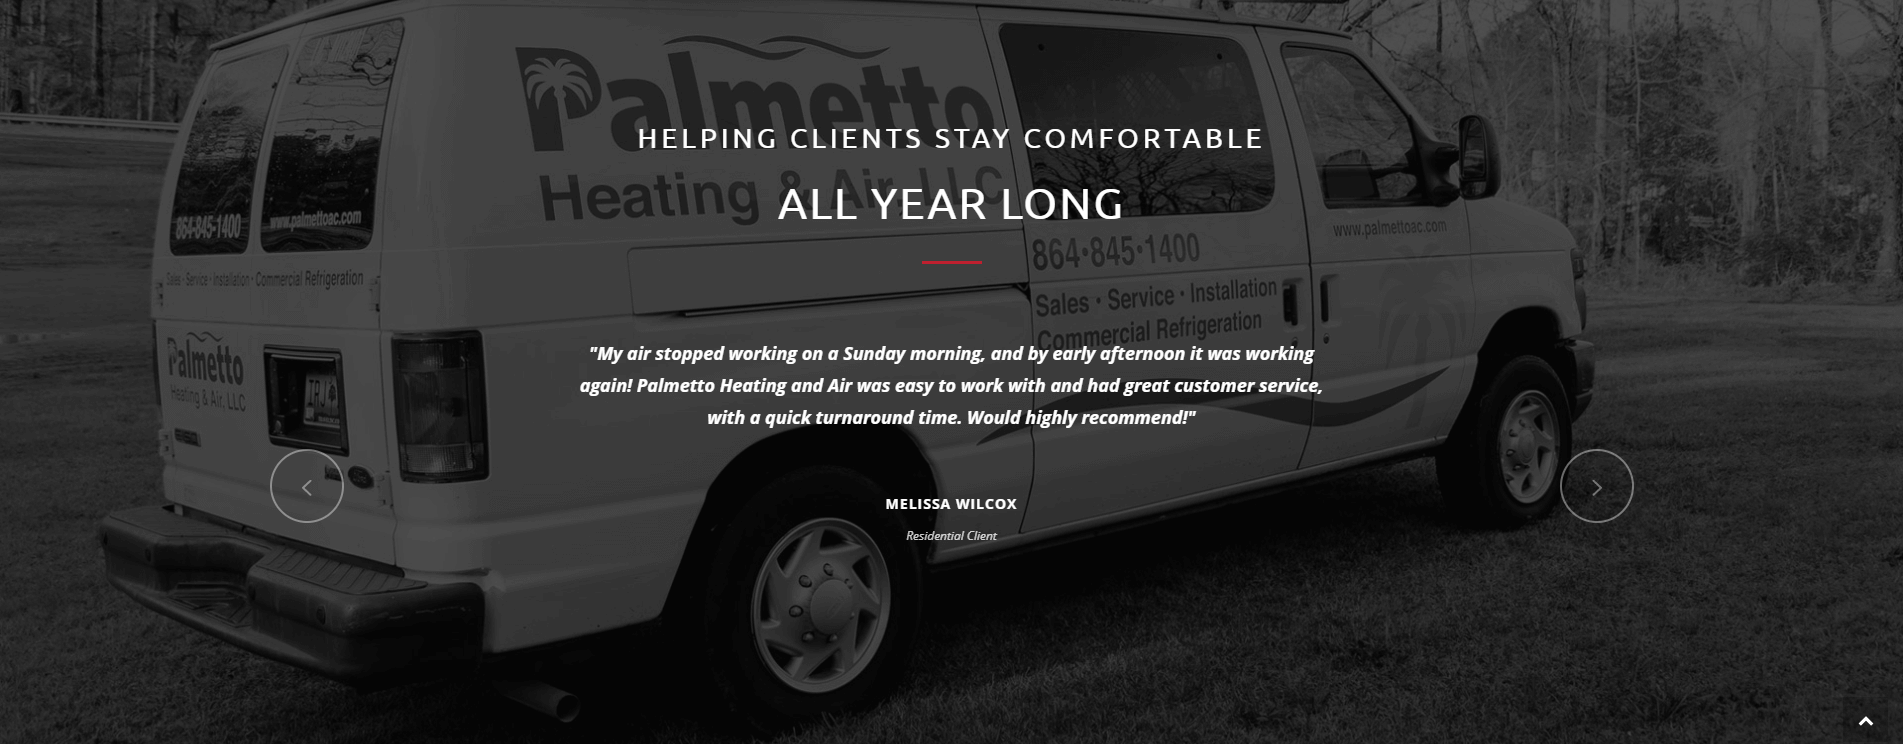 Testimonials from the Palmetto Heating & Air website